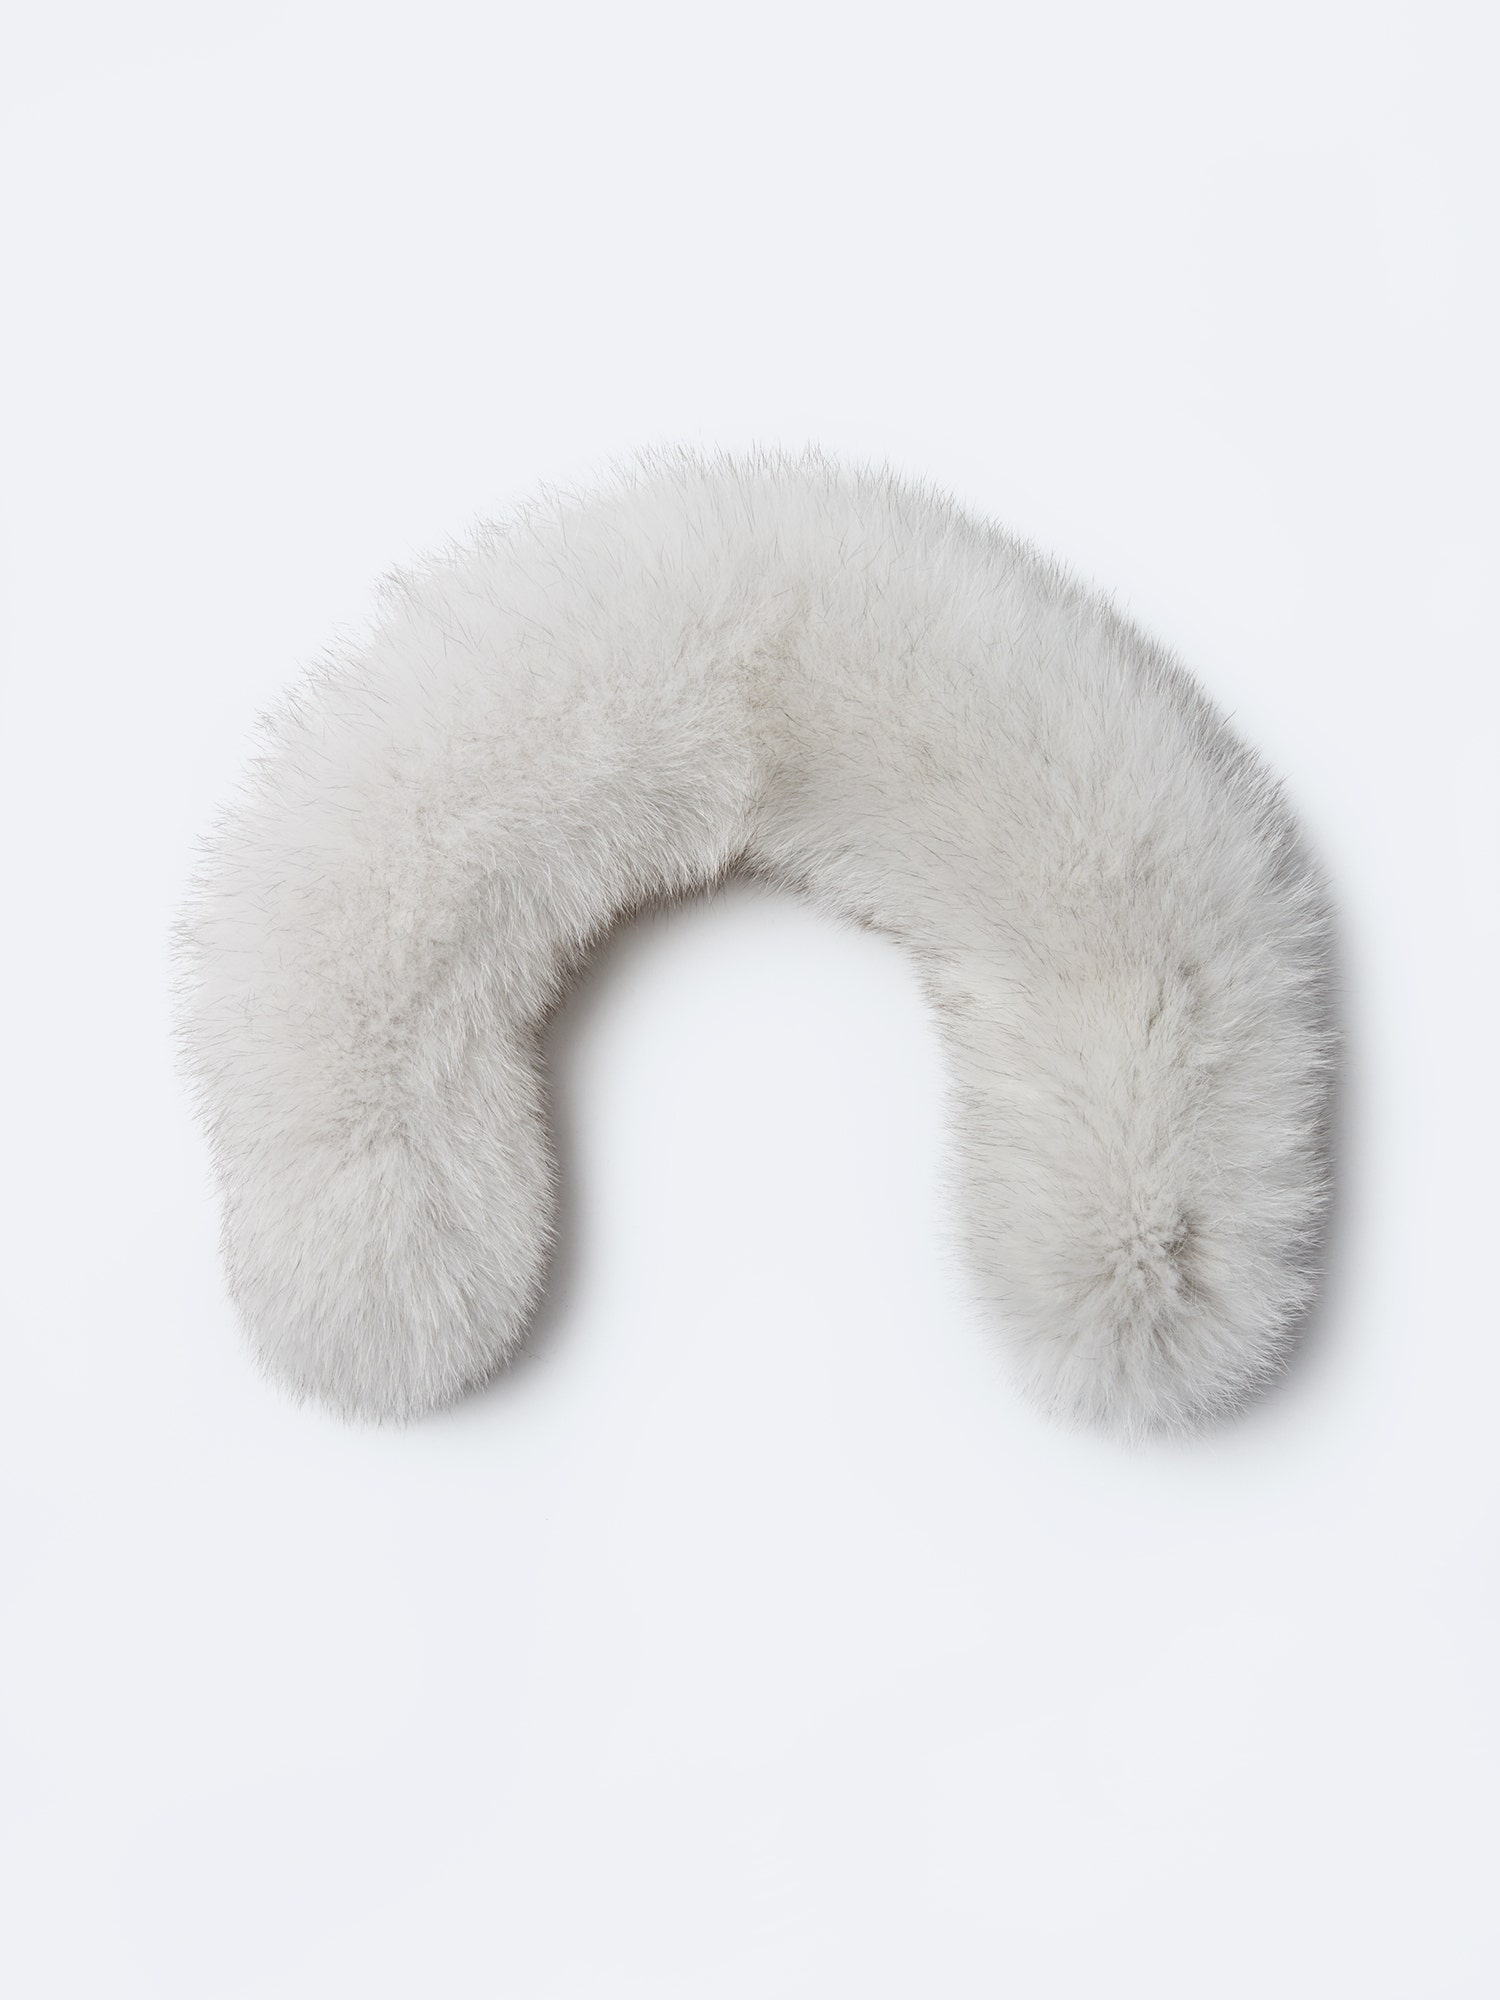 Fur white 23 inches